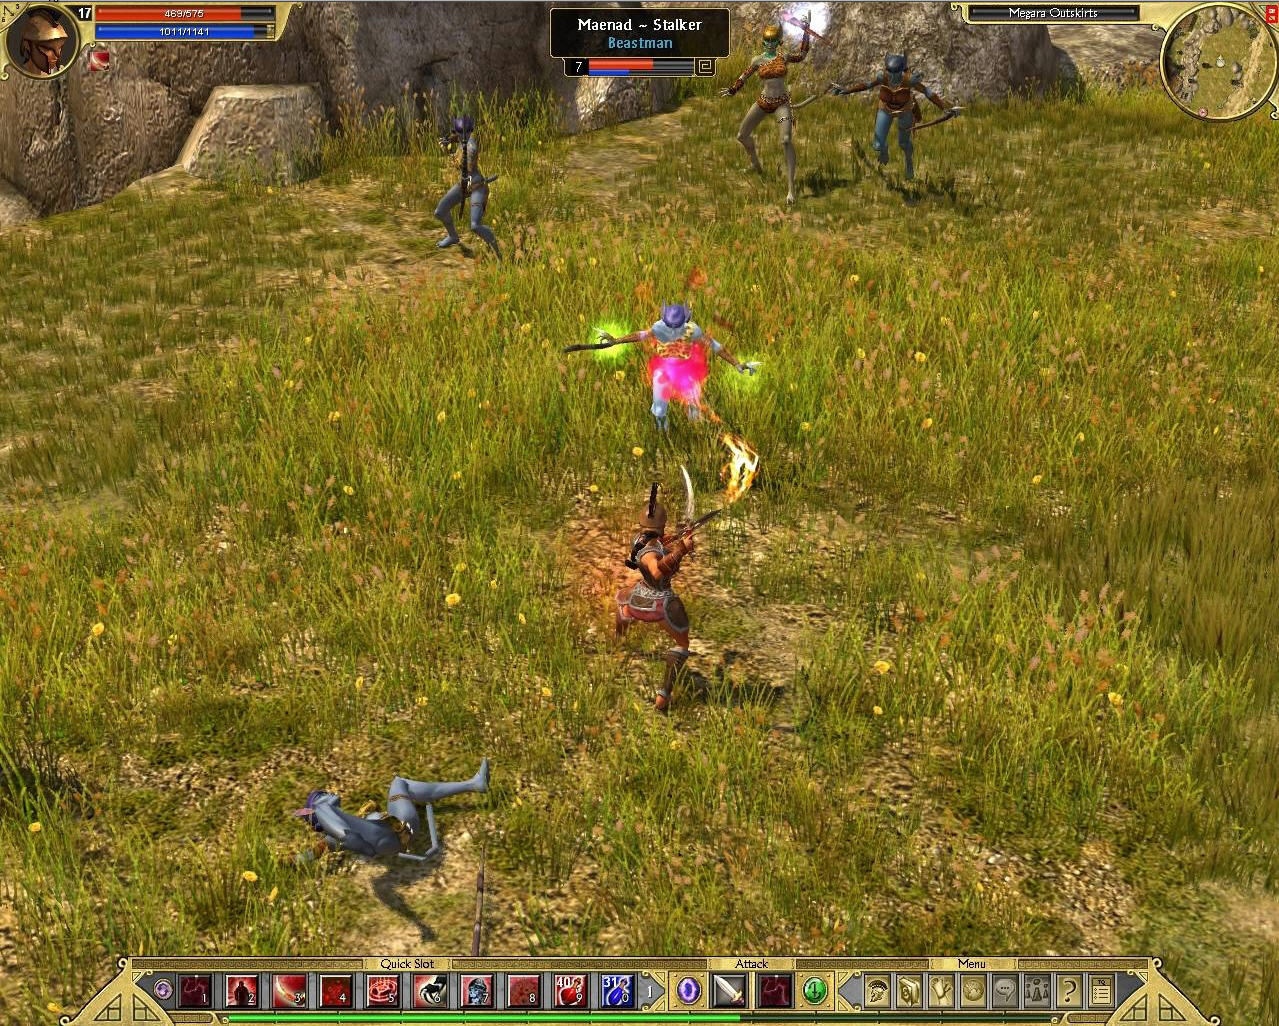 Titan quest nudes games patch erotic scenes